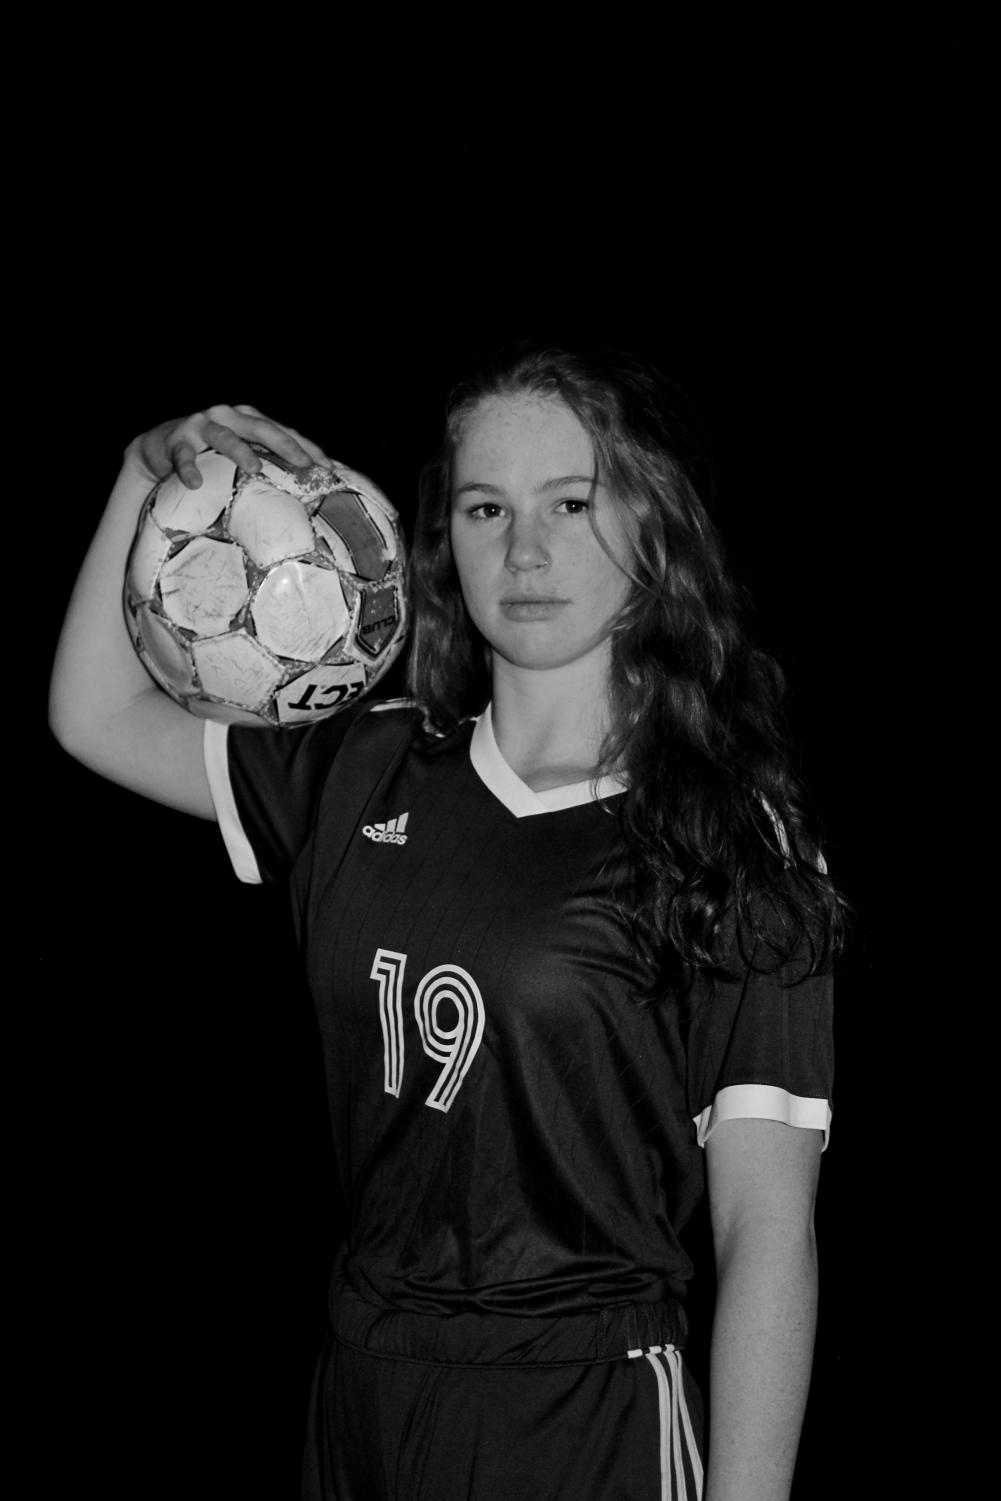 Spangler+is+a+dedicated+soccer+player%2C+not+only+being+a+part+of+Manitou%27s+team%2C+but+participating+in+indoor+soccer+nearly+year+round.+